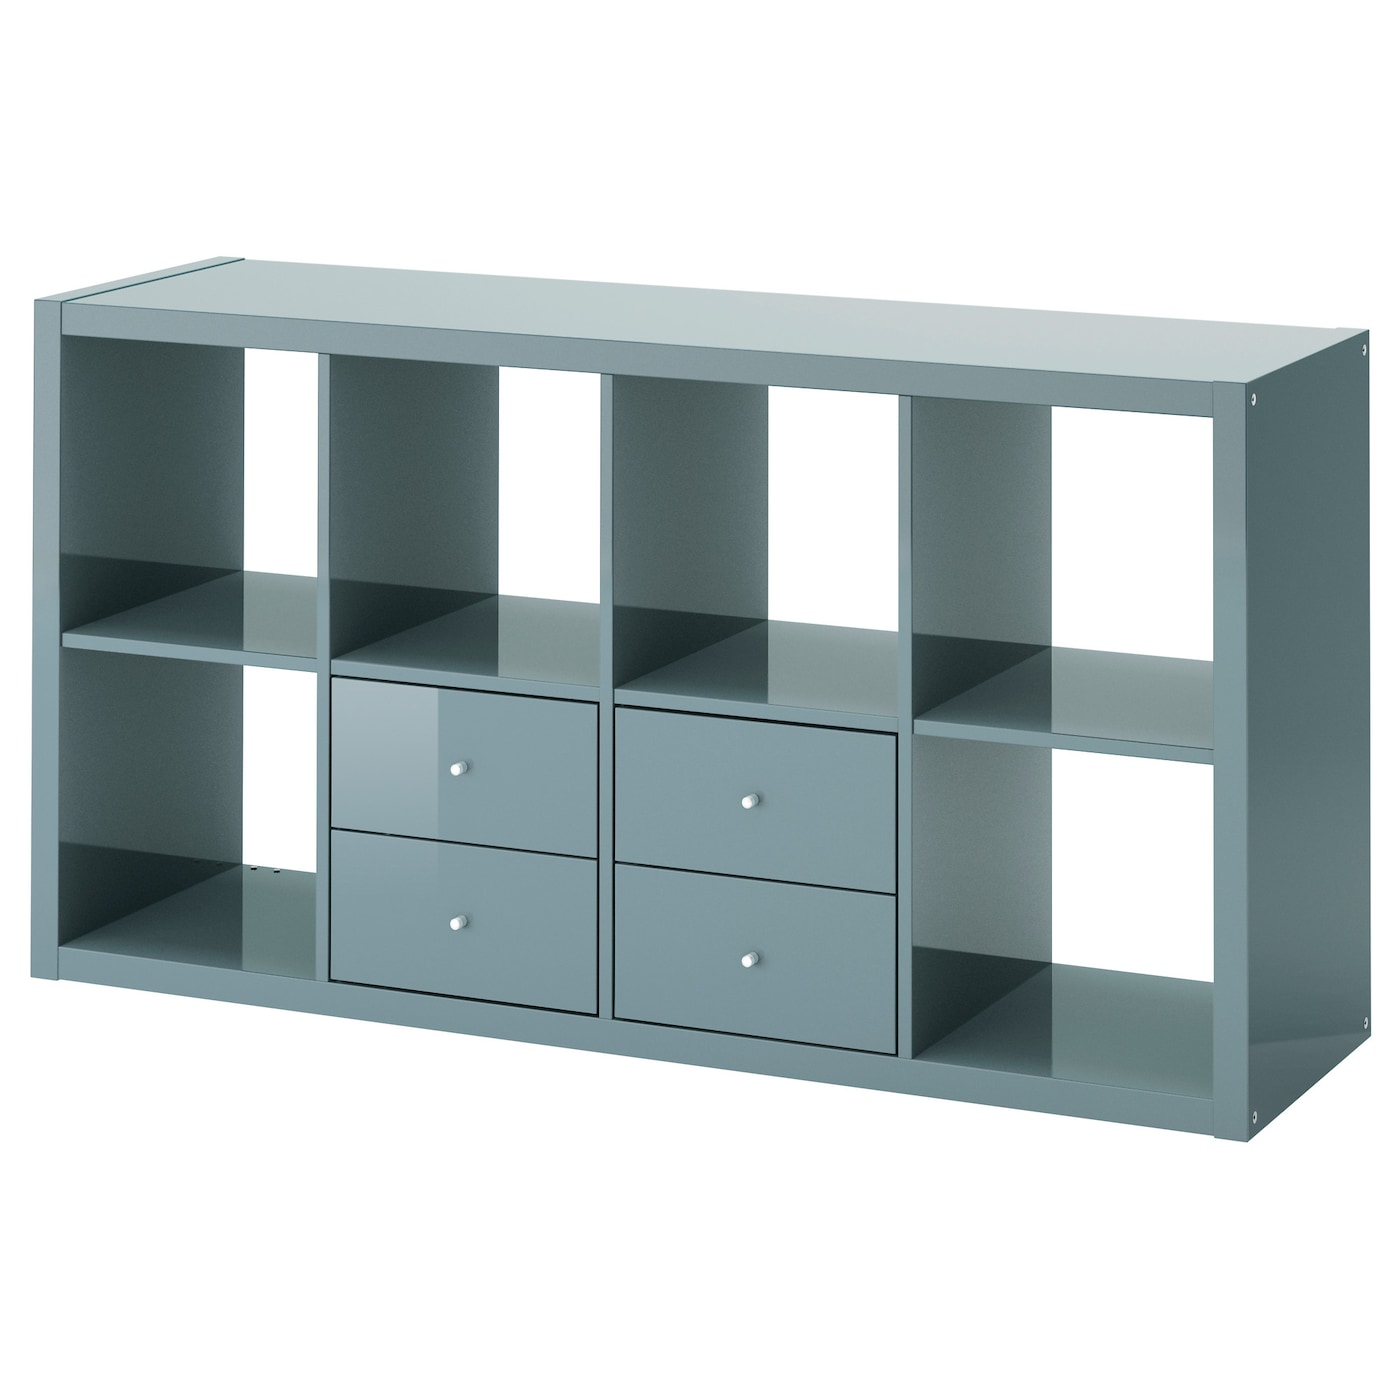 kallax shelving unit with 2 inserts high gloss grey turquoise 147x77 cm ikea. Black Bedroom Furniture Sets. Home Design Ideas